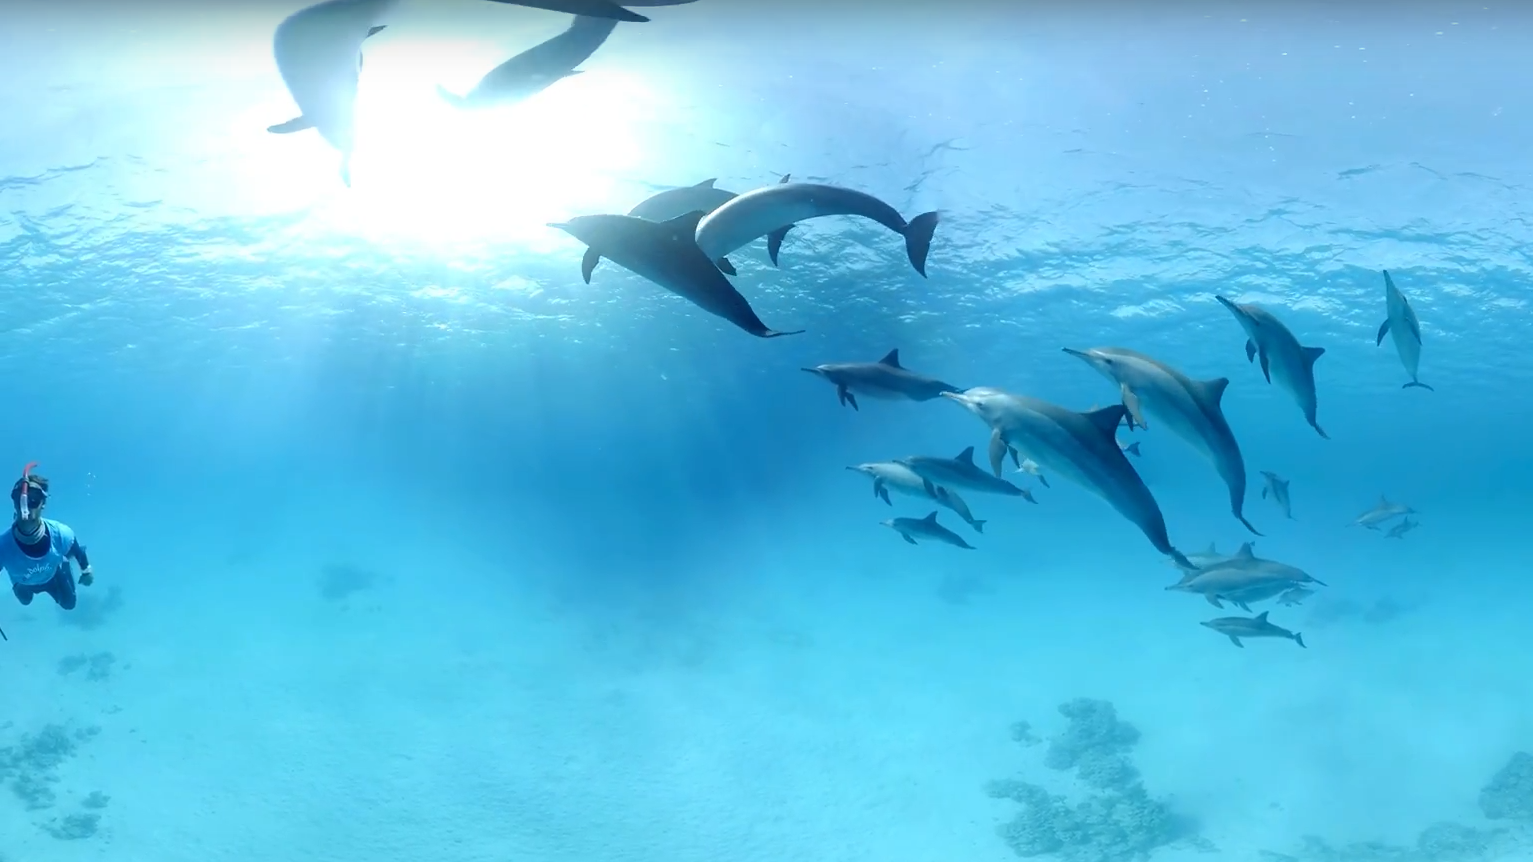 Swimming With Dolphins Goes Cruelty-free Thanks to Waterproof VR Googles | All3DP